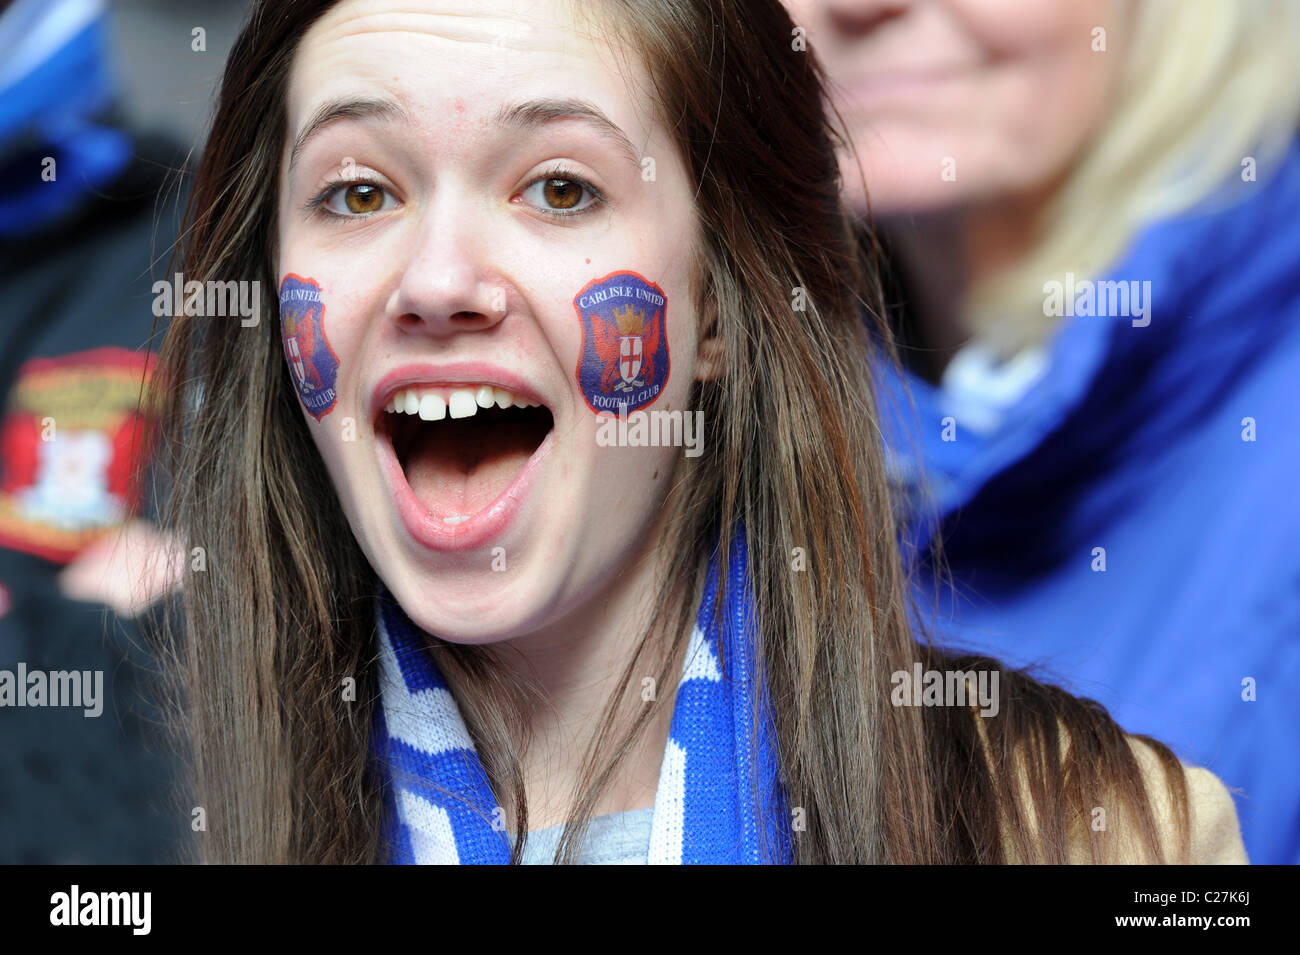 Attractive female football supporter wearing Carlisle United club badge transfers on her face - Stock Image